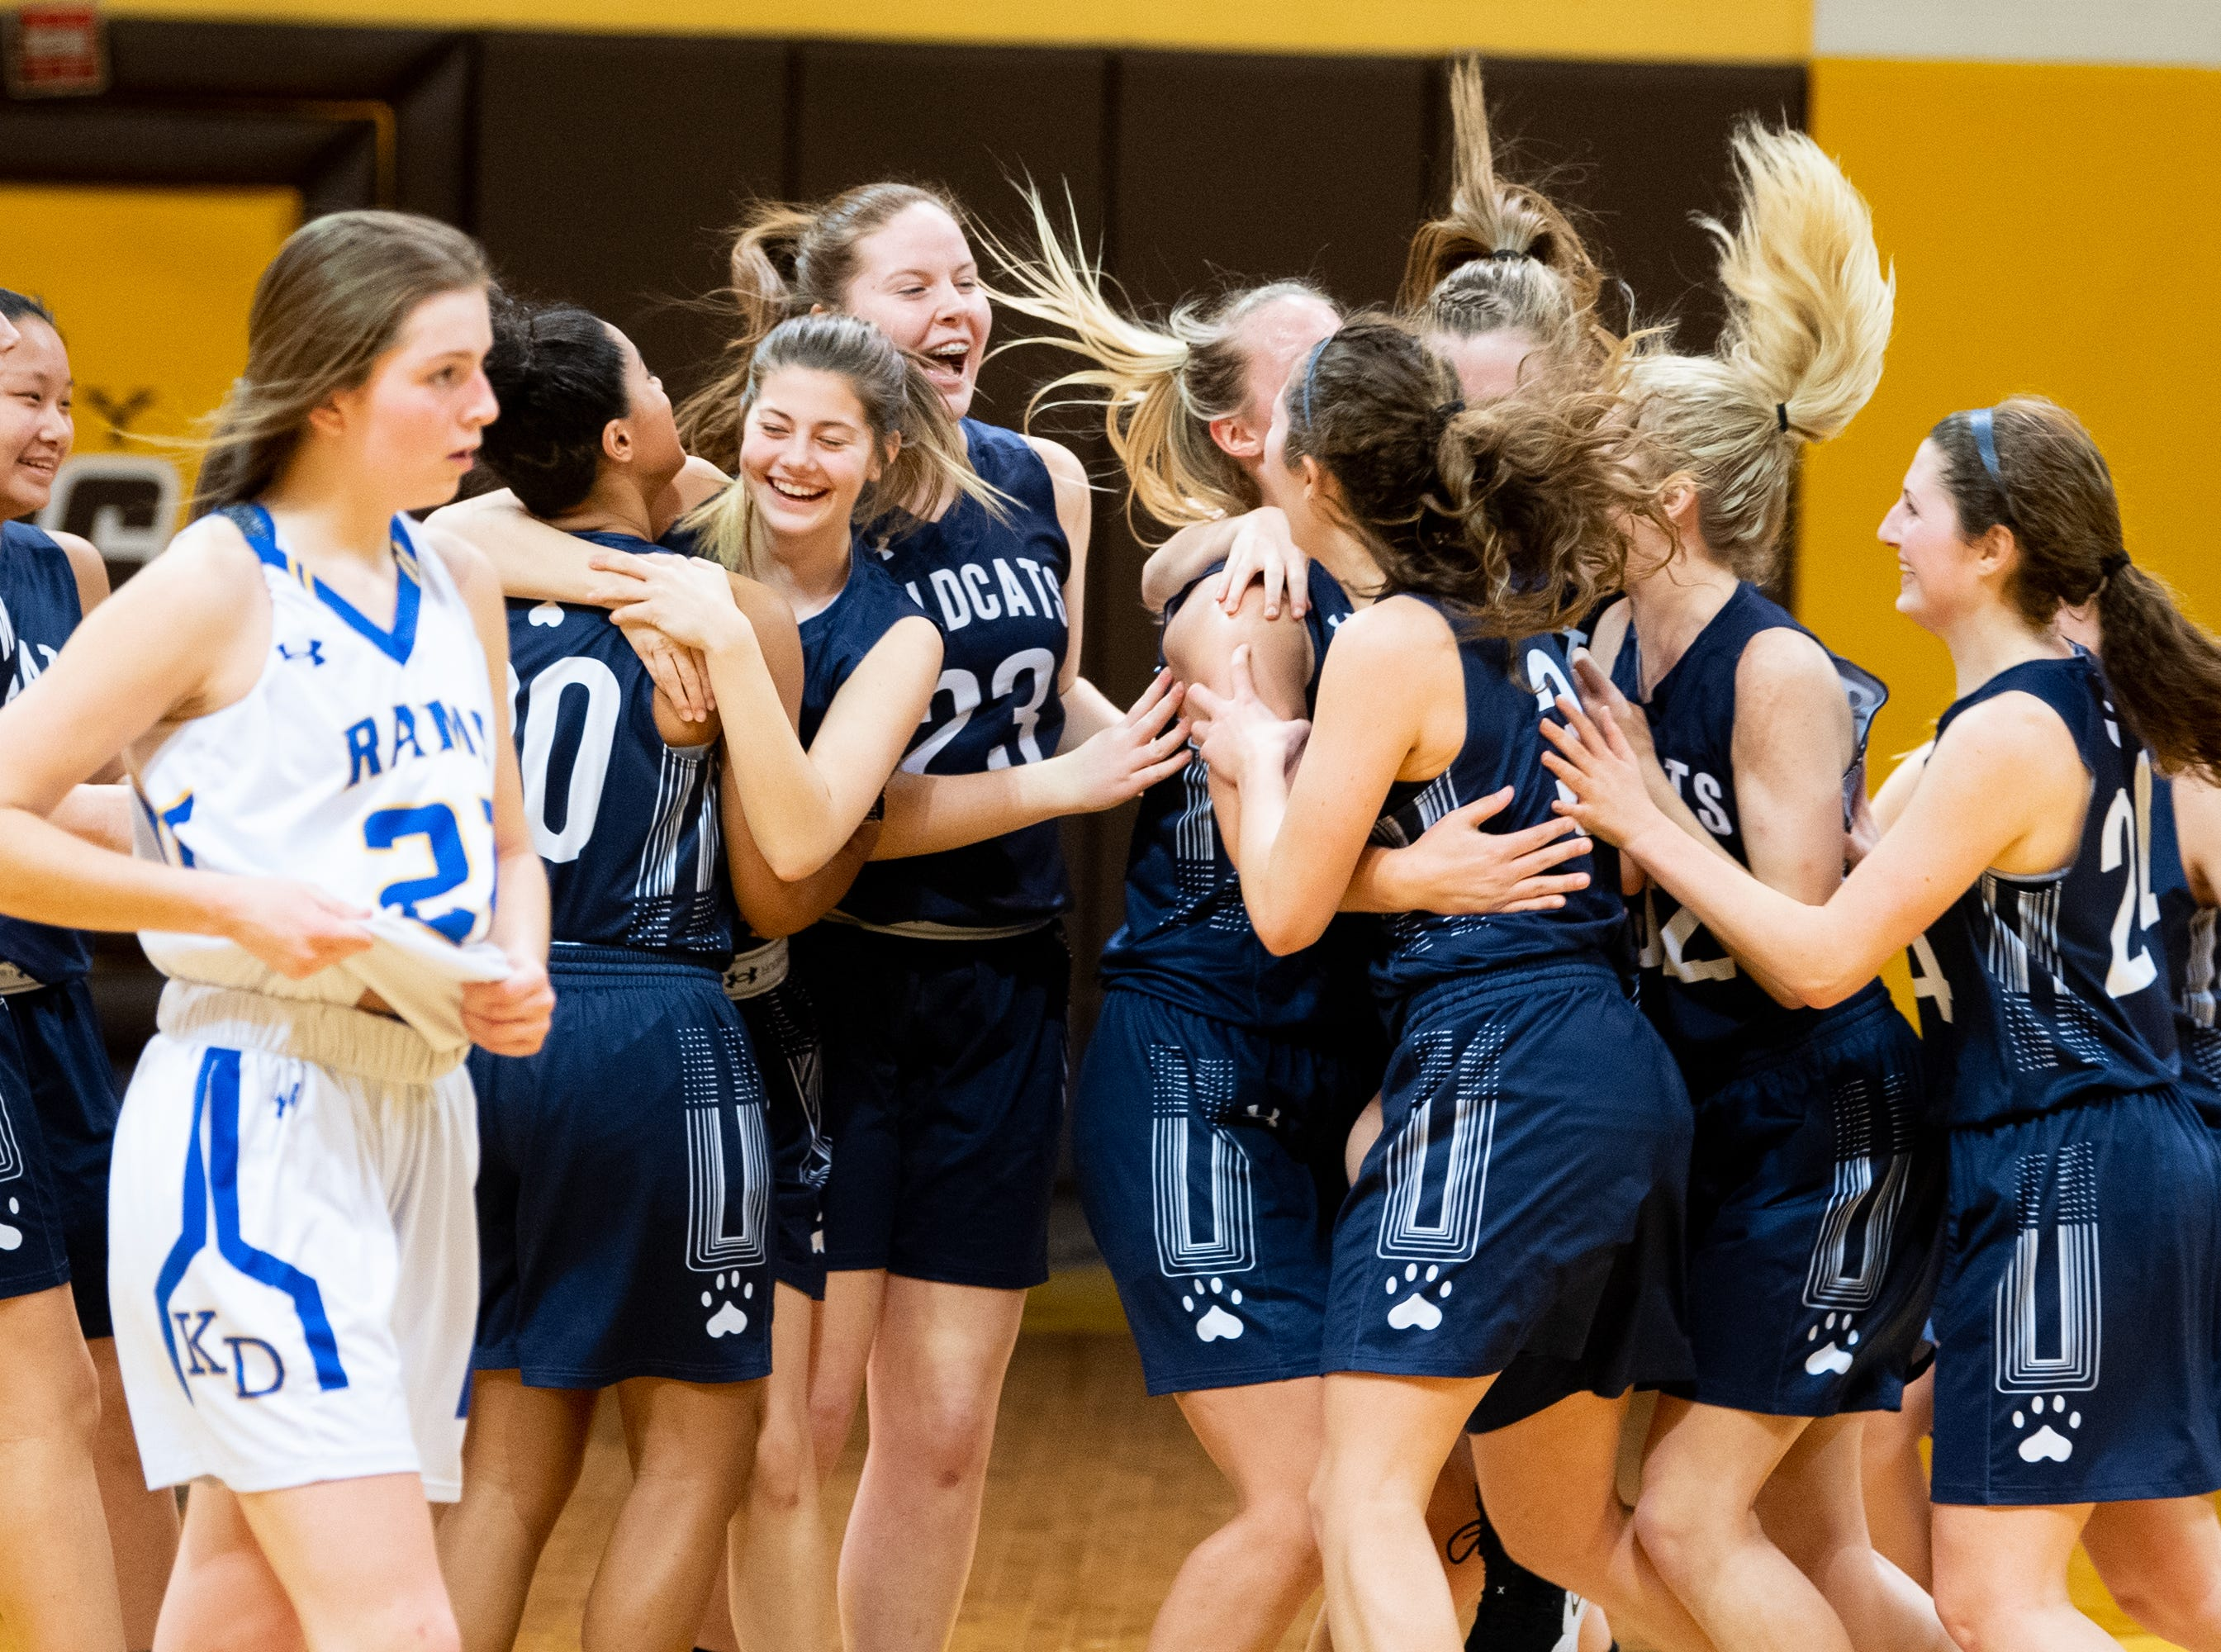 Mifflinburg Area celebrates after defeating Kennard-Dale 51 to 45 in the PIAA second round girls' basketball game, March 13, 2019 at Milton Hershey School. The Rams fell to the Wildcats 51 to 45.